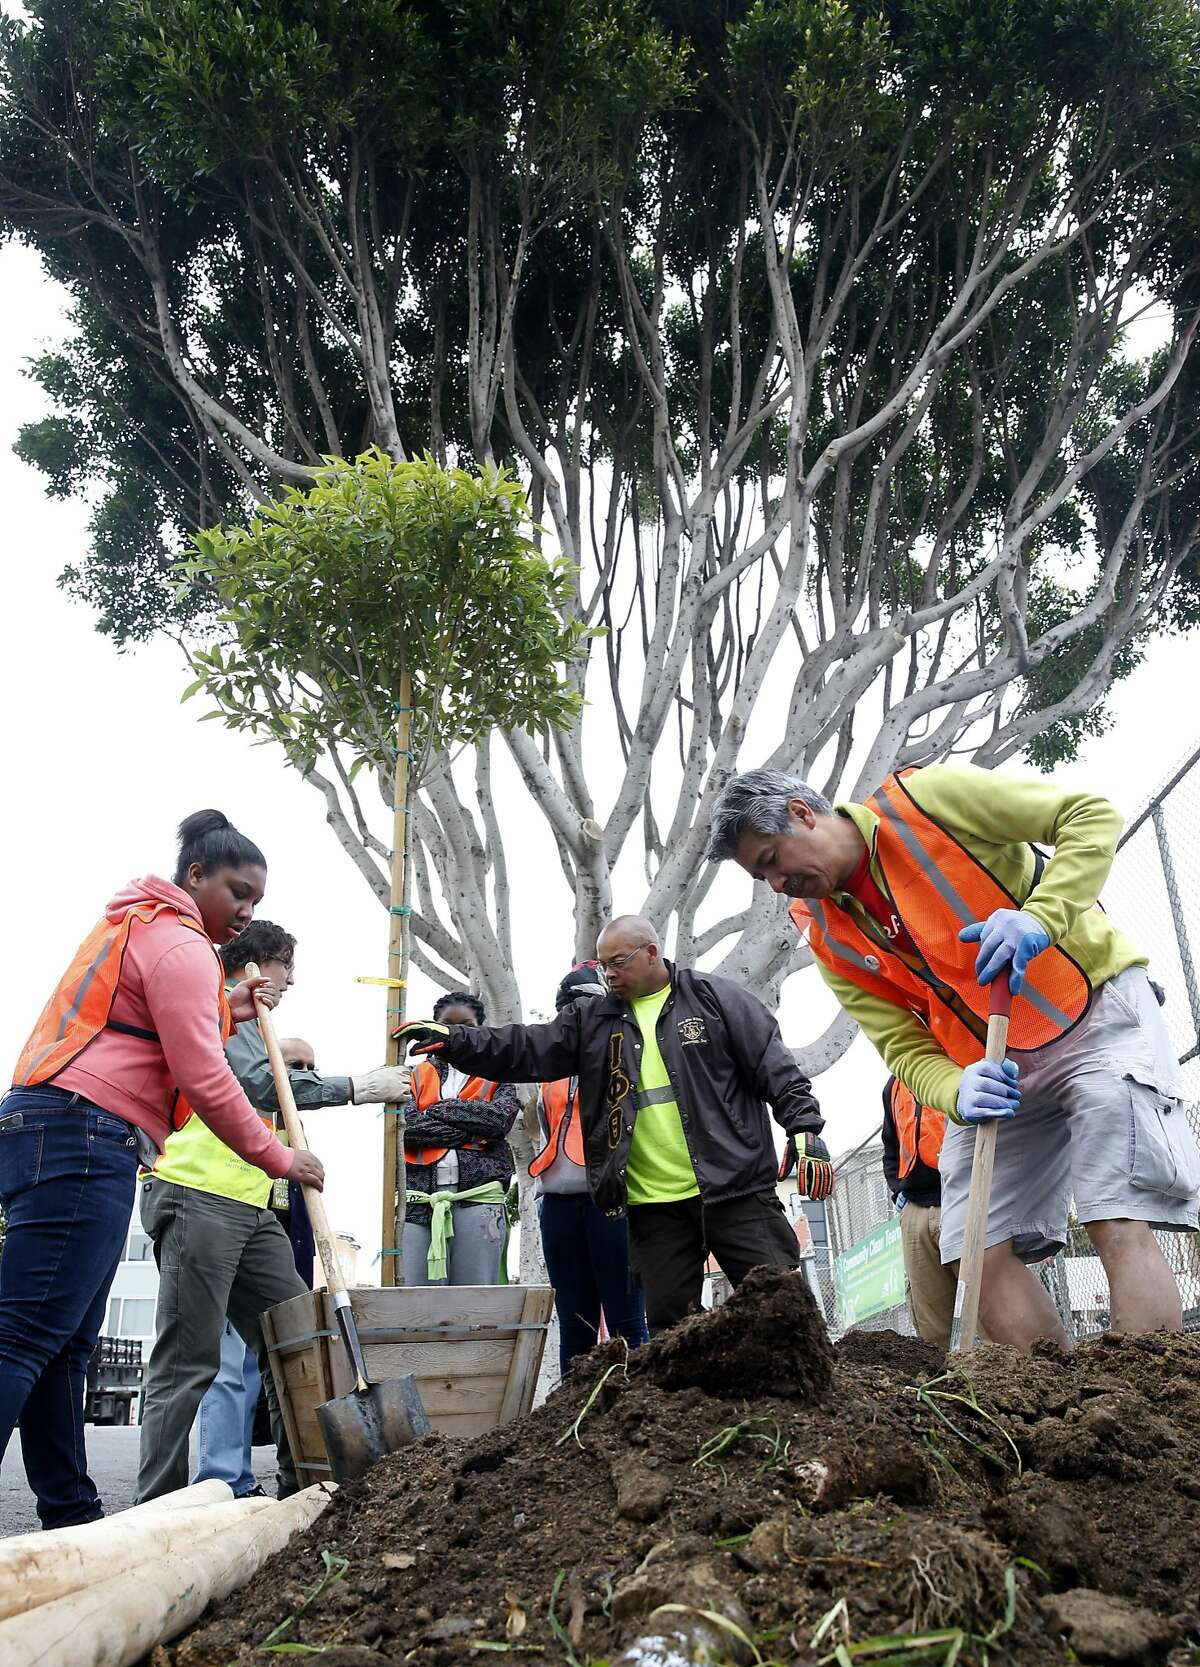 Volunteers plant a tree in front of Francisco Middle School for the Department of Public Works Eco Fair in San Francisco, Calif. on Saturday, March 19, 2016. Hundreds of volunteers fanned out throughout the North Beach and Chinatown neighborhoods to plant 36 trees, remove weeds and repaint streetlight poles.